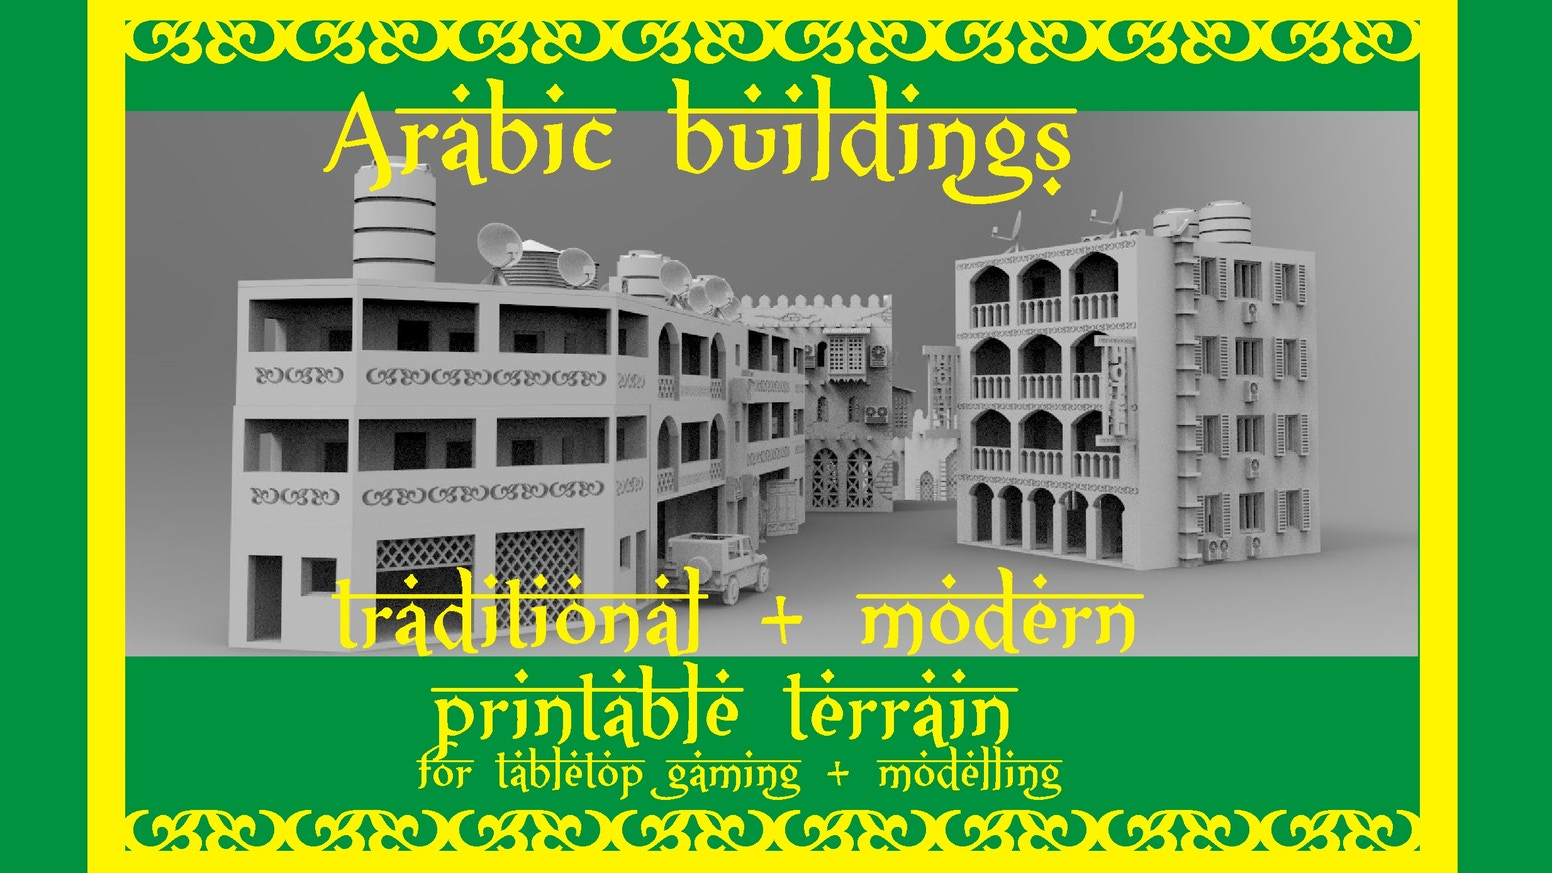 Arabic printable tabletop terrain. Stl files for your arabic wargame or modelling. You will get traditional and modern buildings.